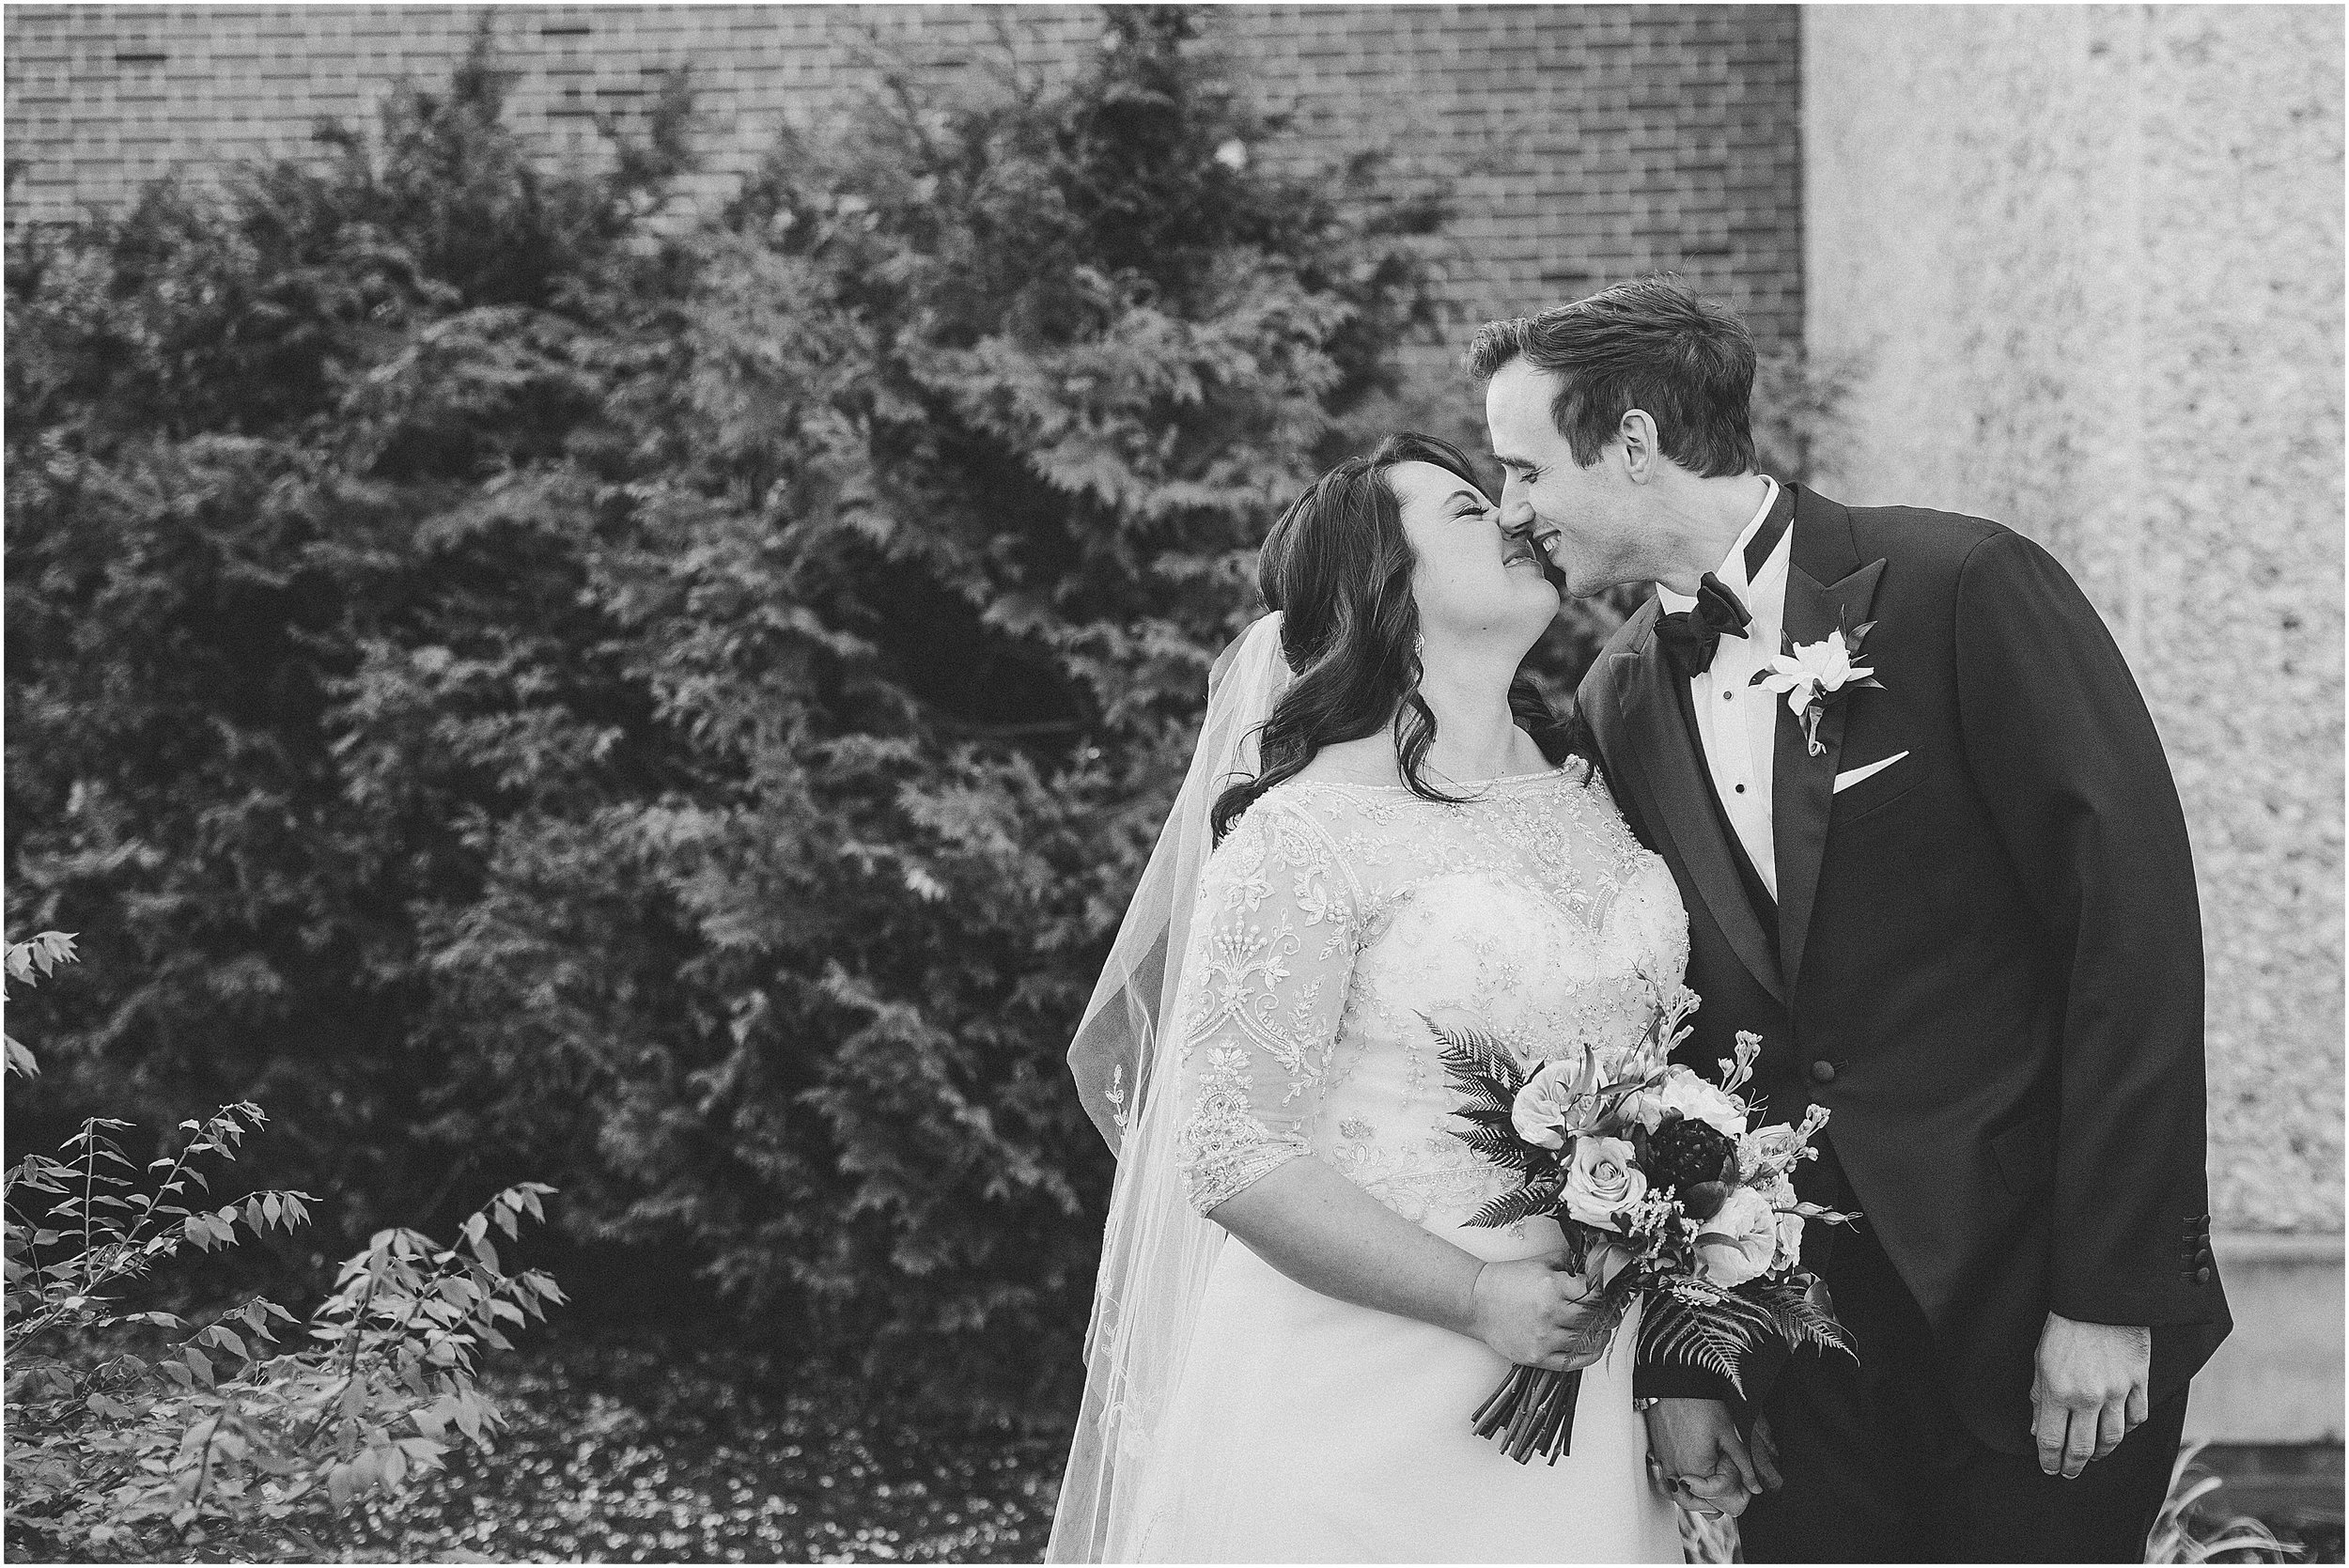 Williamsport_PA_Wedding_Photographer_0250.jpg